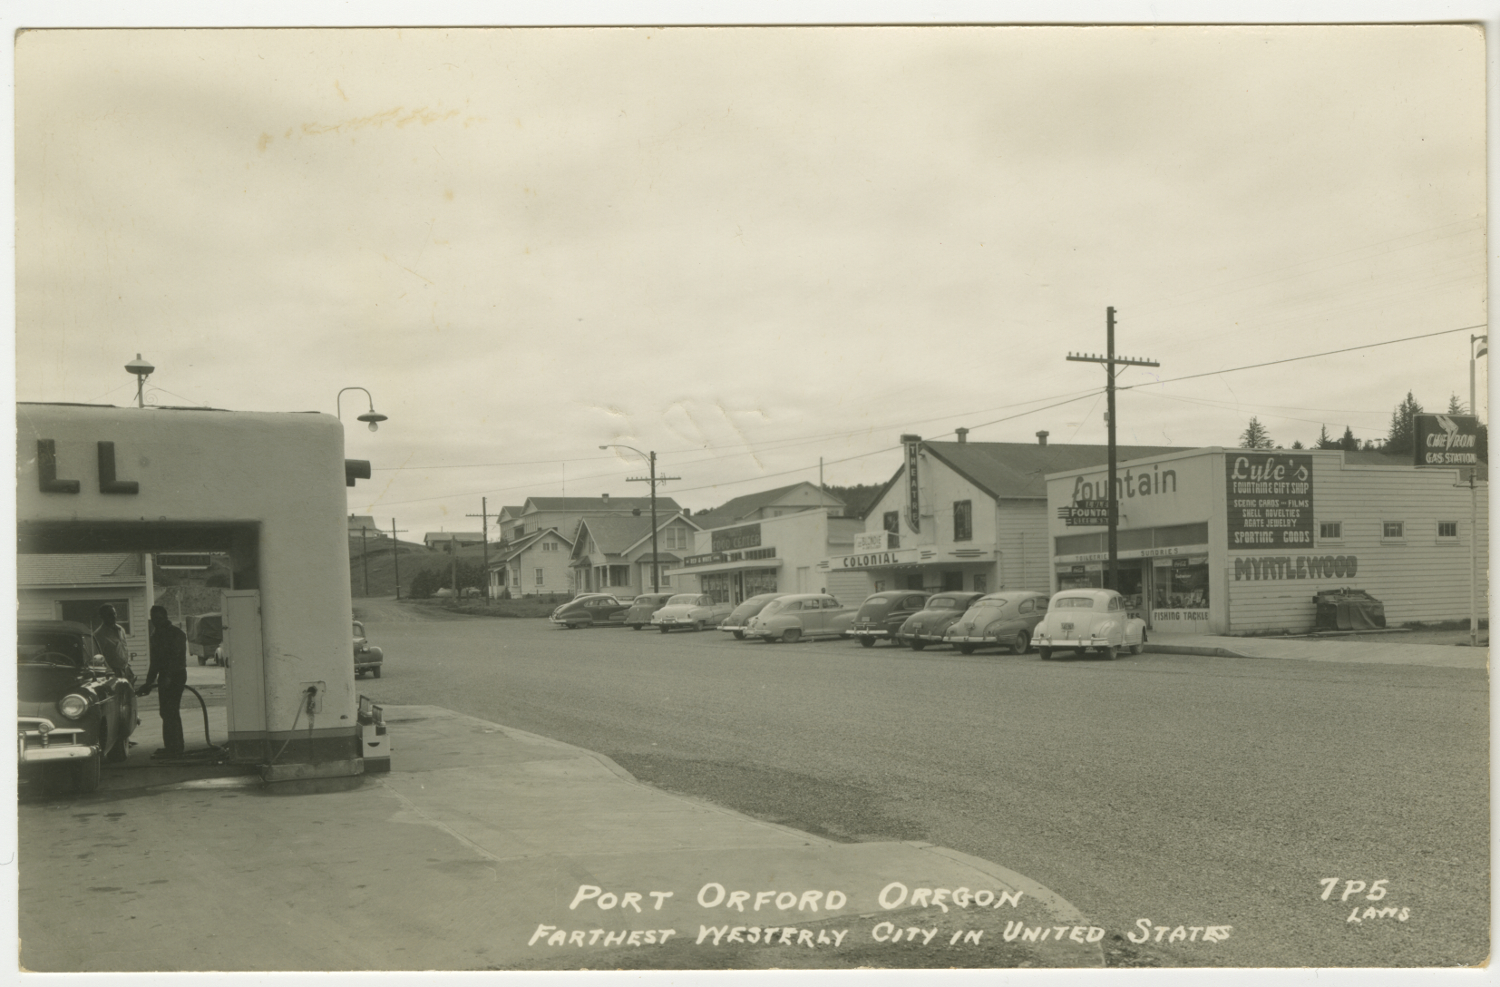 Port Orford Oregon - Farthest Westerly City in United State - Laws